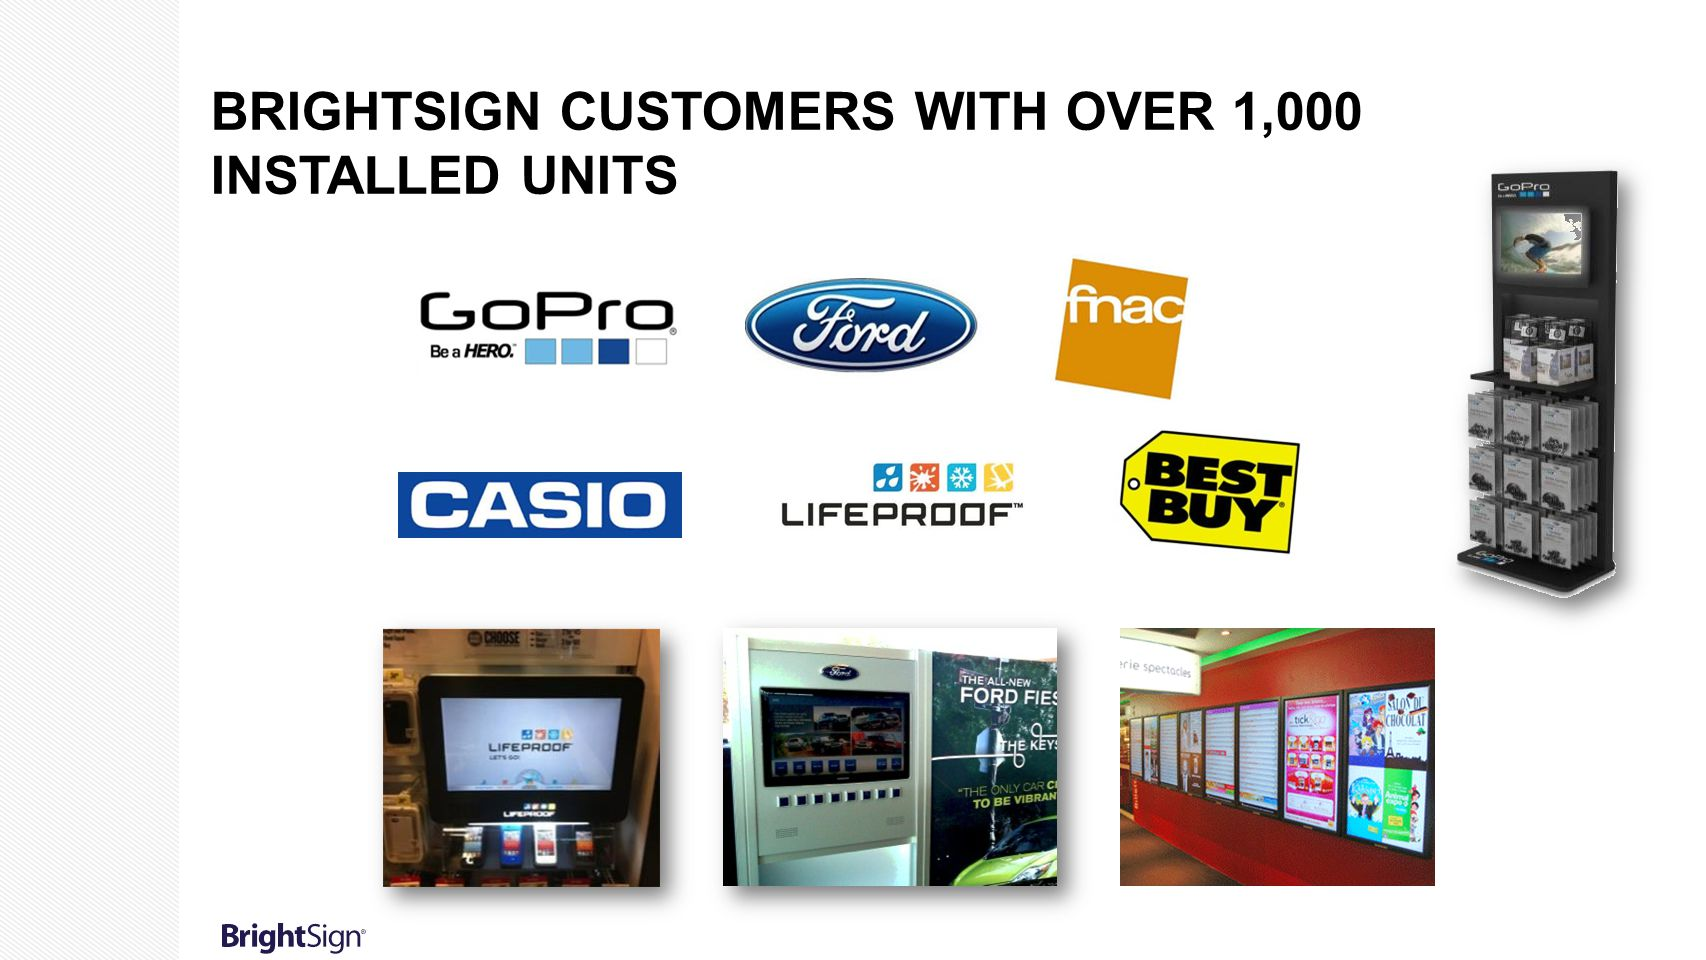 BrightSign customers with over 1,000 installed units